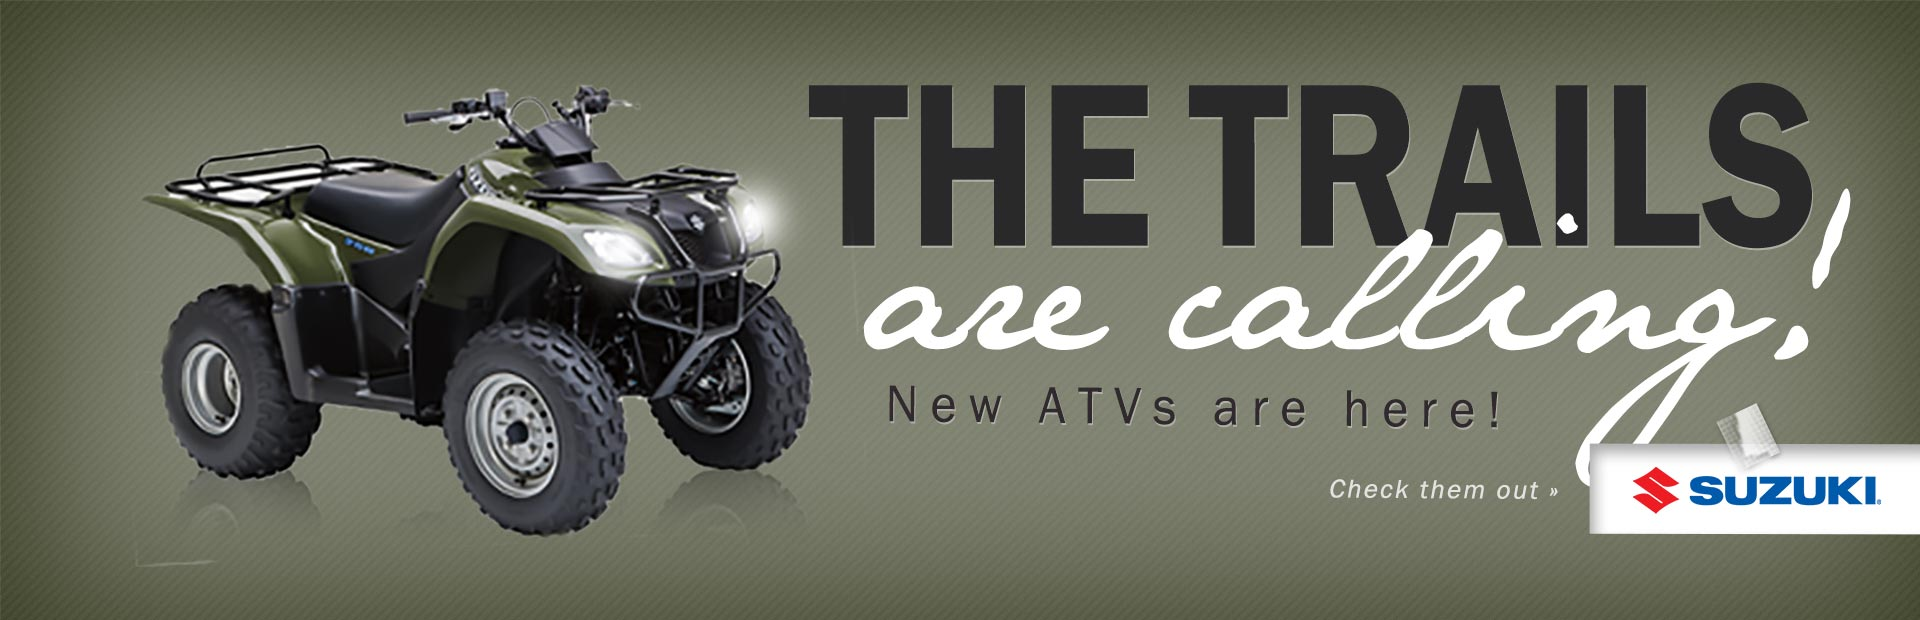 The trails are calling! Click here to check out new ATVs.